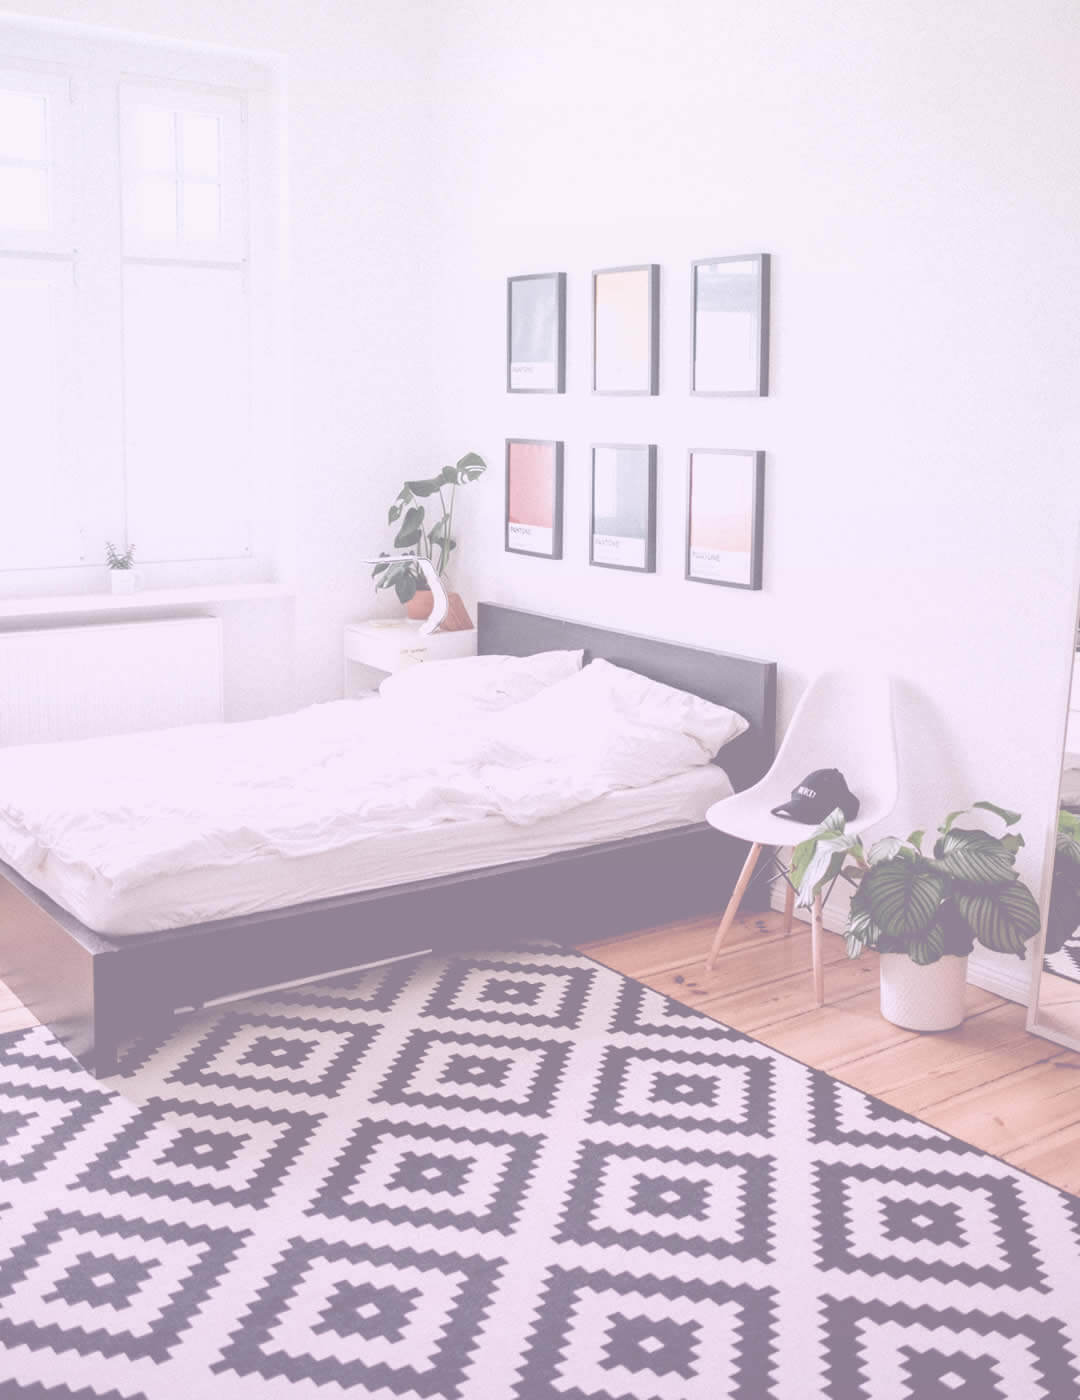 Sparkling clean room after several rounds of home organization